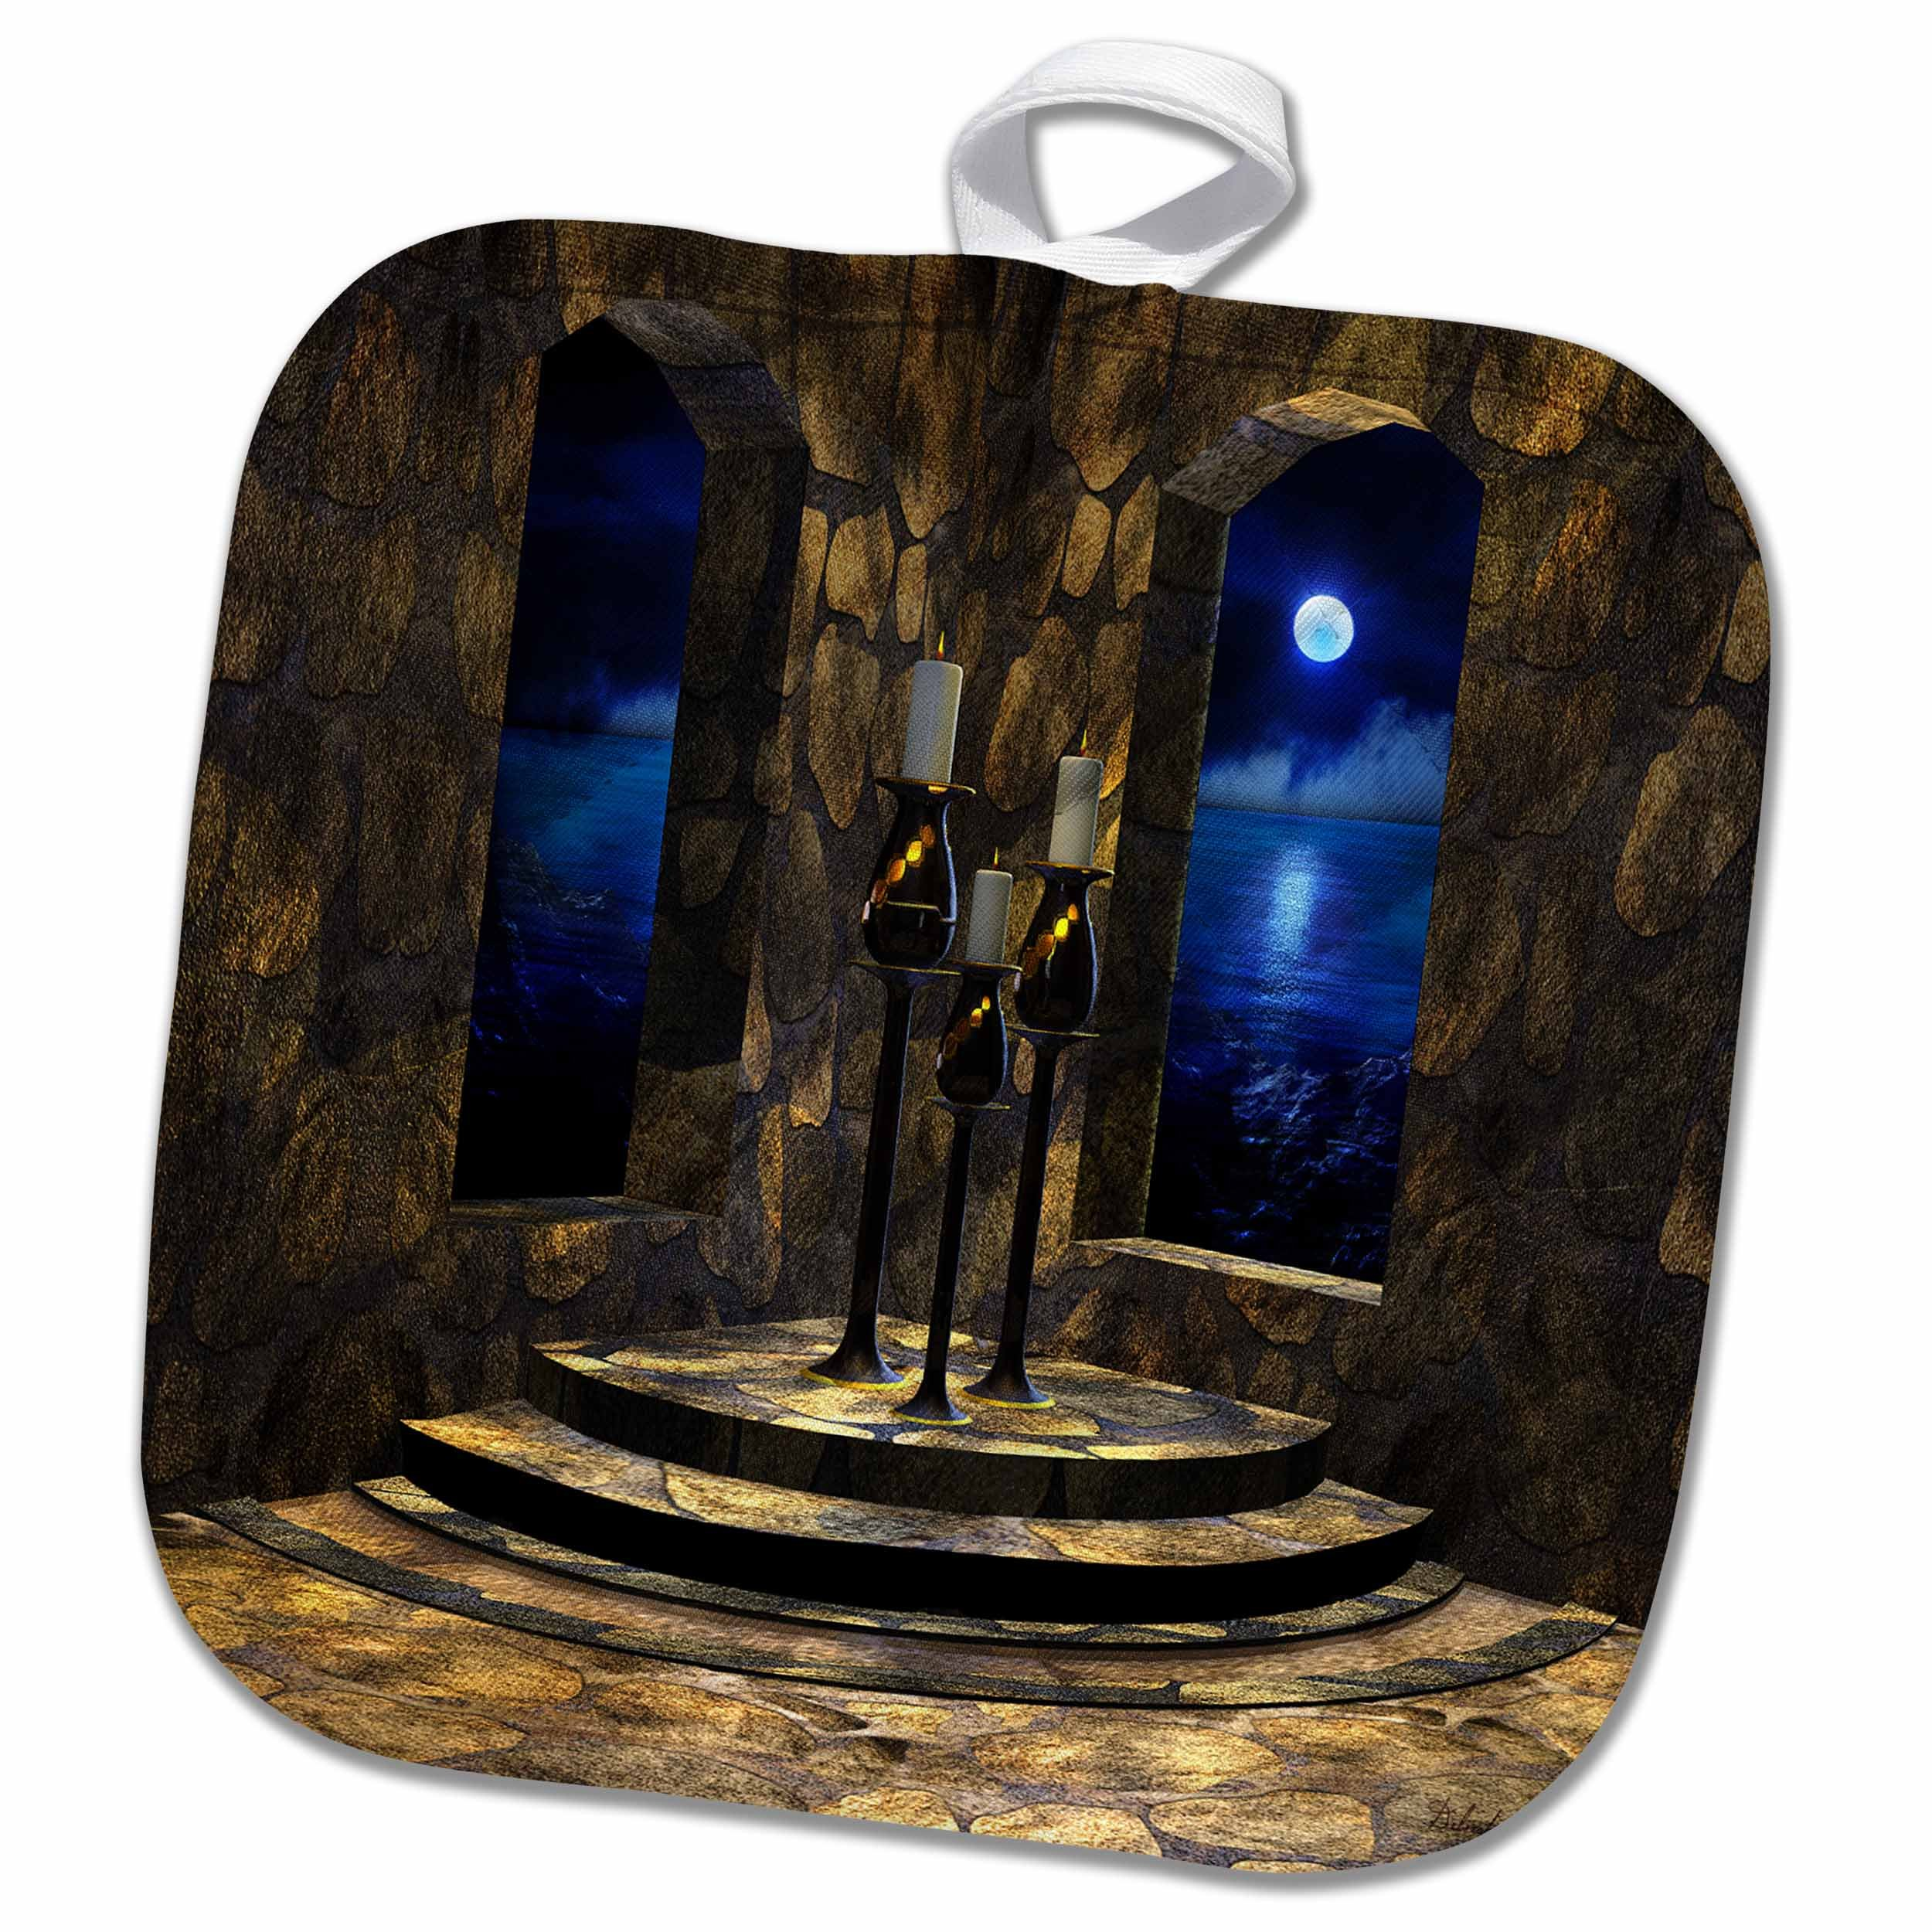 3D Rose a Medieval Castle Interior with Stone Walls-Arched Windows and a View of the Moonlit Sea Beyond Pot Holder, 8'' x 8''